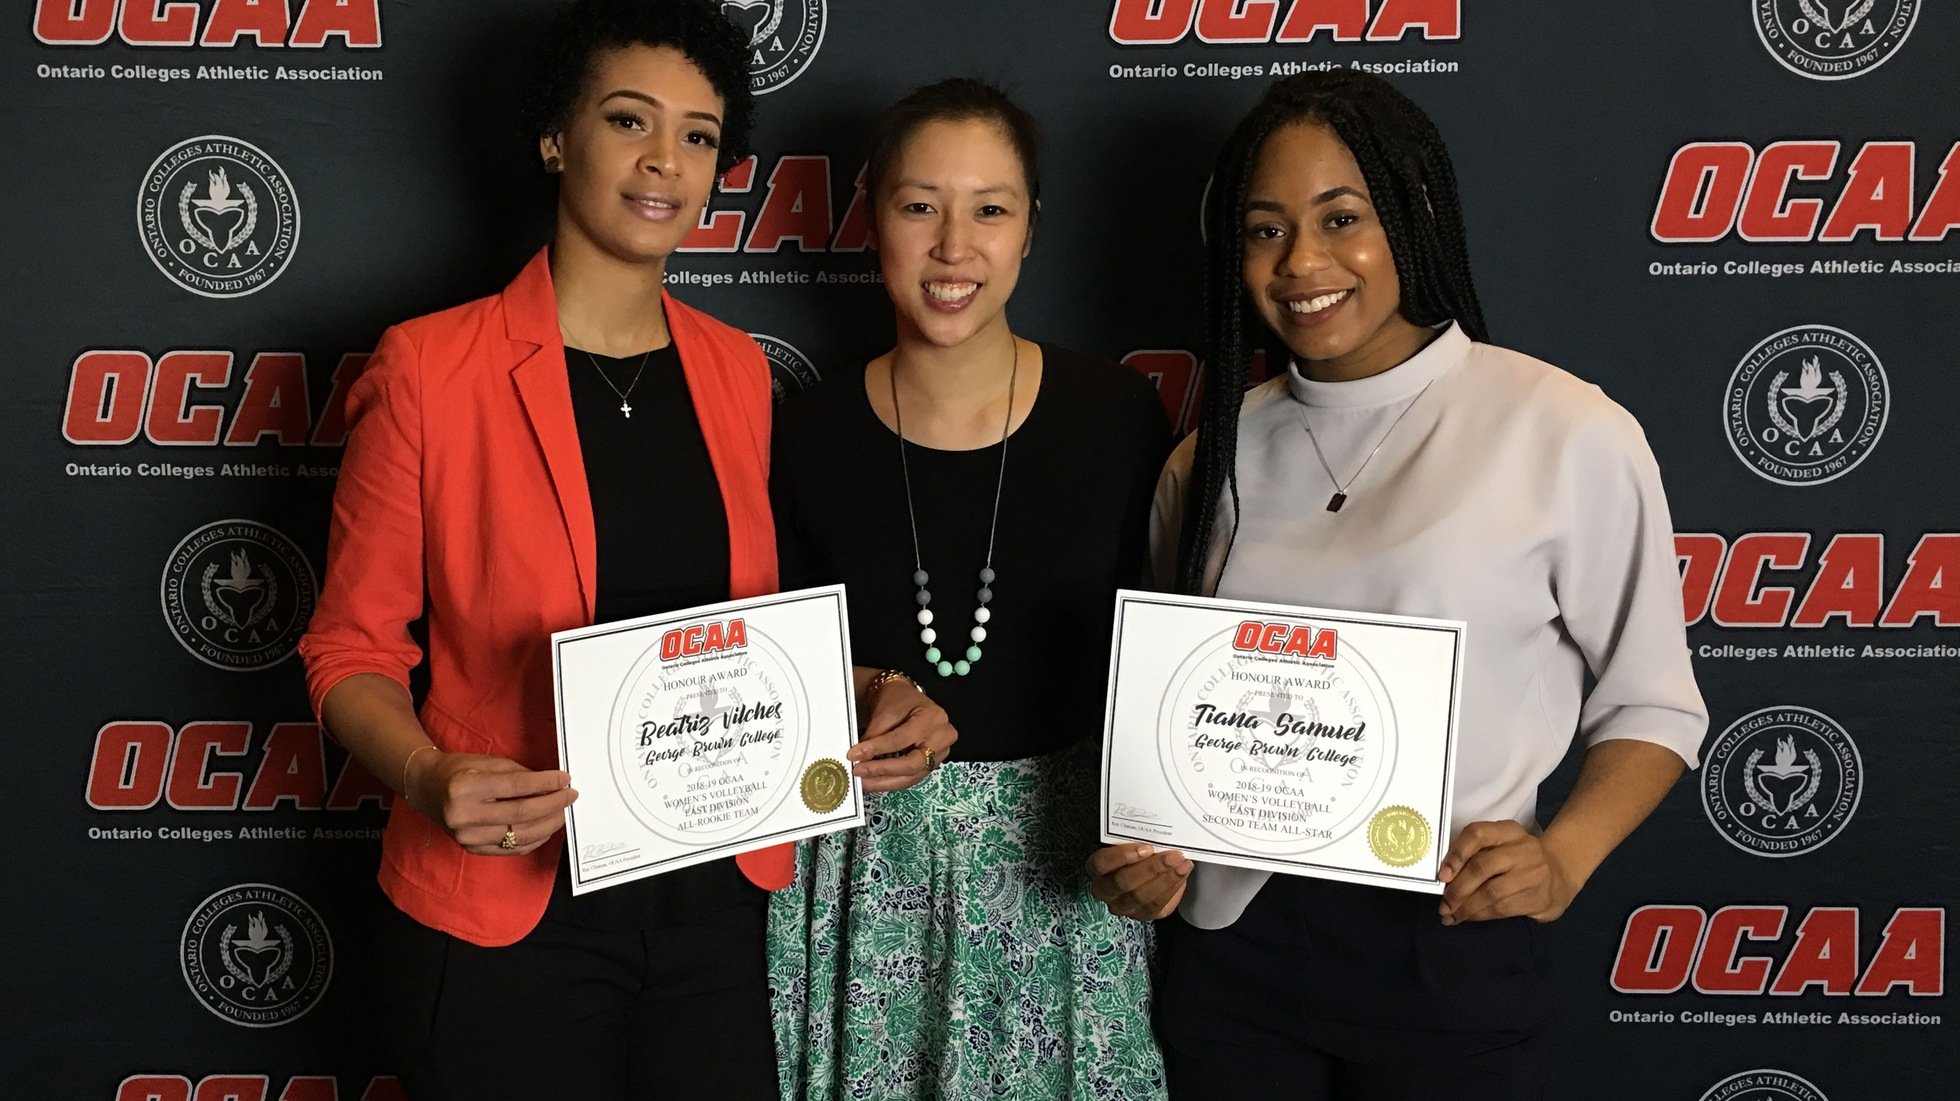 TIANA SAMUEL NAMED 2ND TEAM OCAA ALL-STAR, BEATRIZ VILCHES TO ALL-ROOKIE TEAM